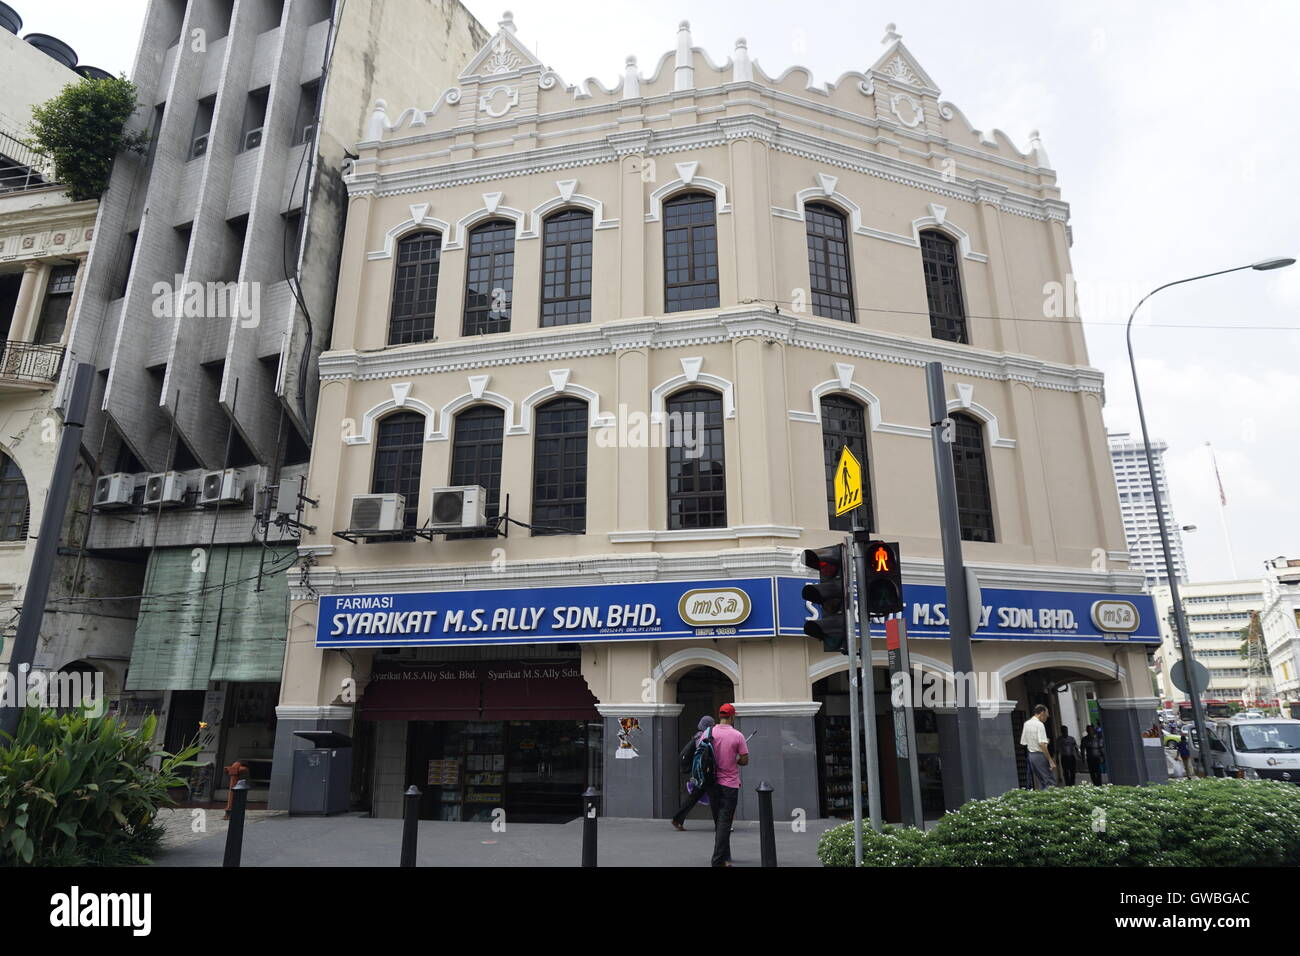 colonial shophouse building in downtown Kuala Lumpur and MS Ally , one of the oldest pharmacy in the city - Stock Image